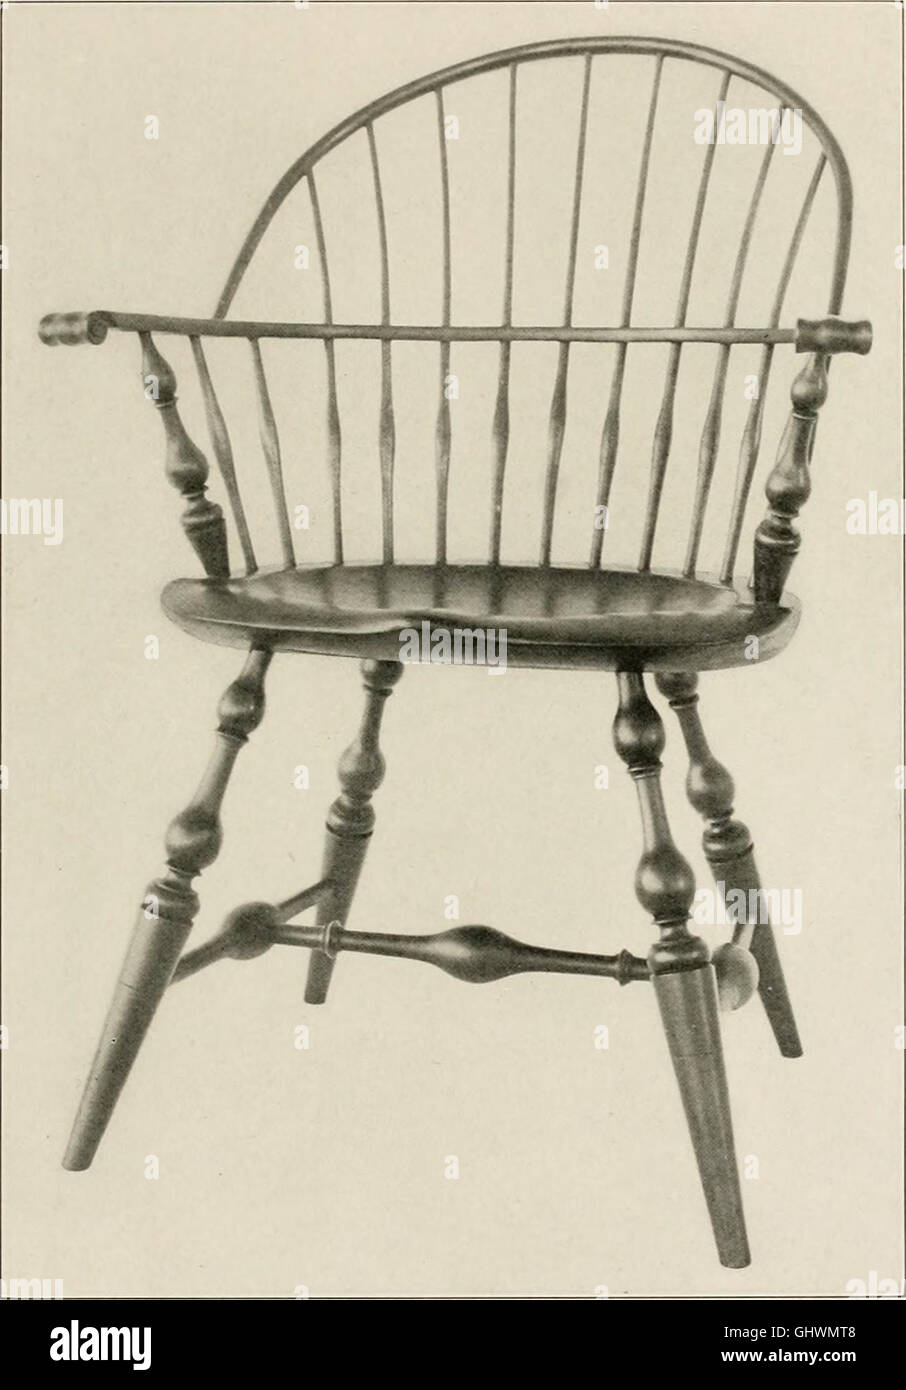 windsor chairs wallace nutting